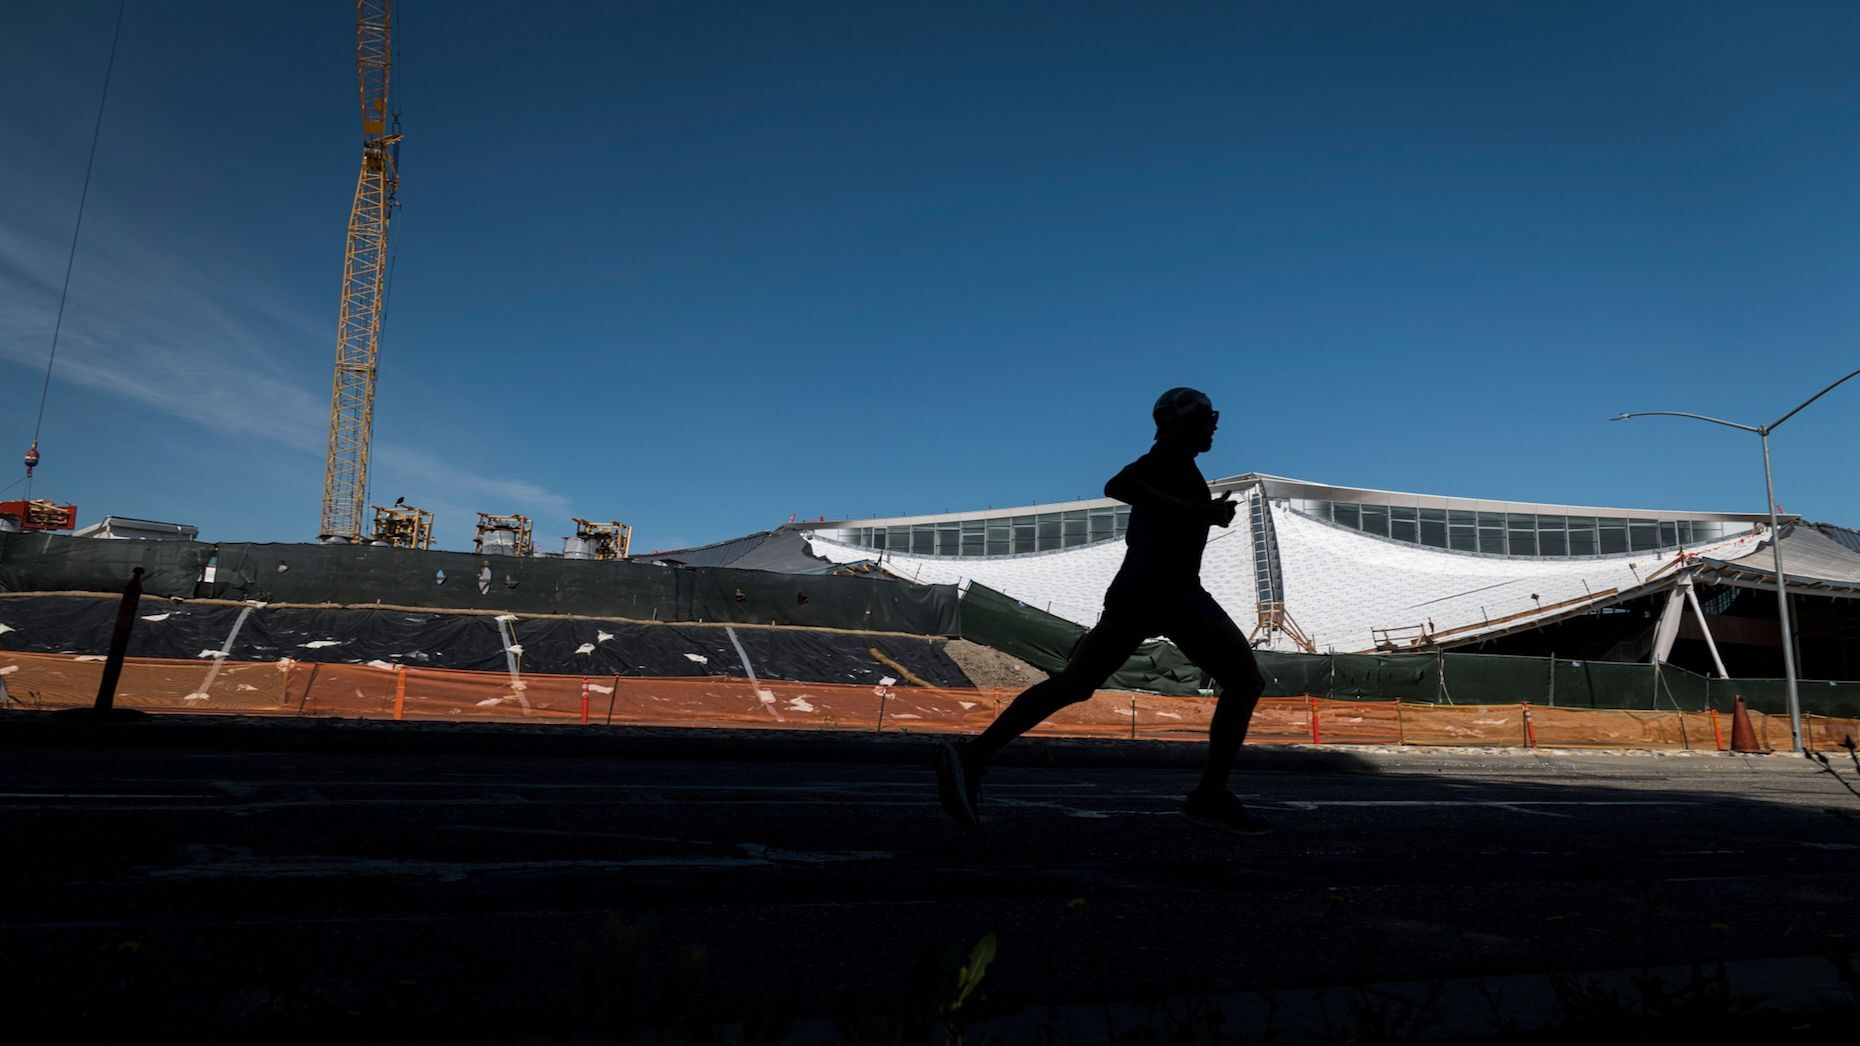 A person runs past a building under construction at the Google campus in Mountain View, California, U.S., on Thursday, May 21, 2020. Photo: Bloomberg